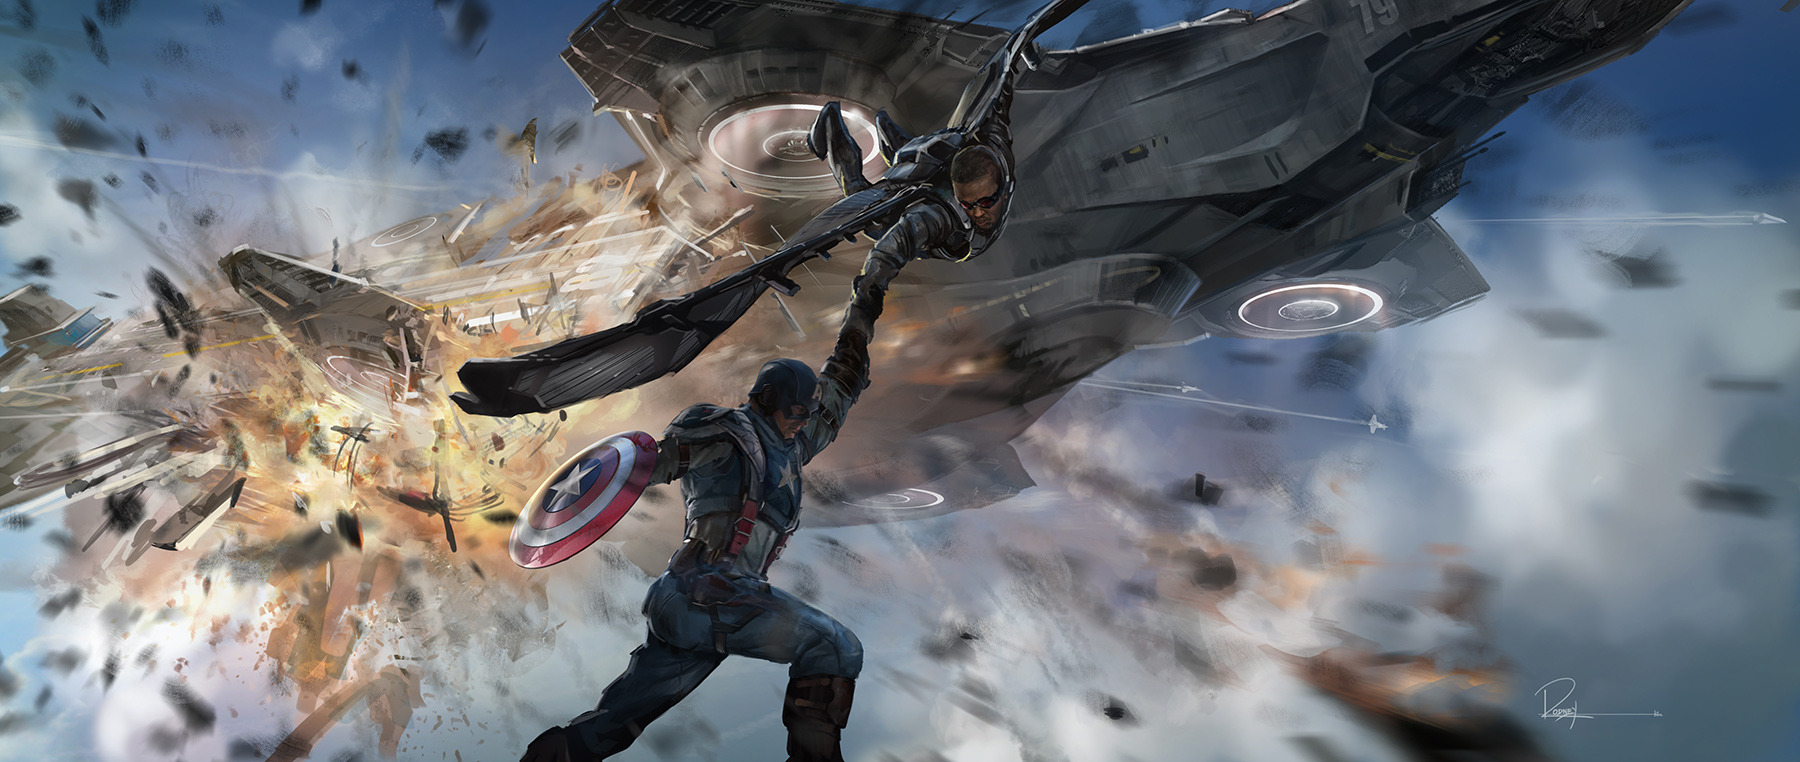 Captain America: The Winter Soldier Key Frame Illustrations by Rodney Fuentebella